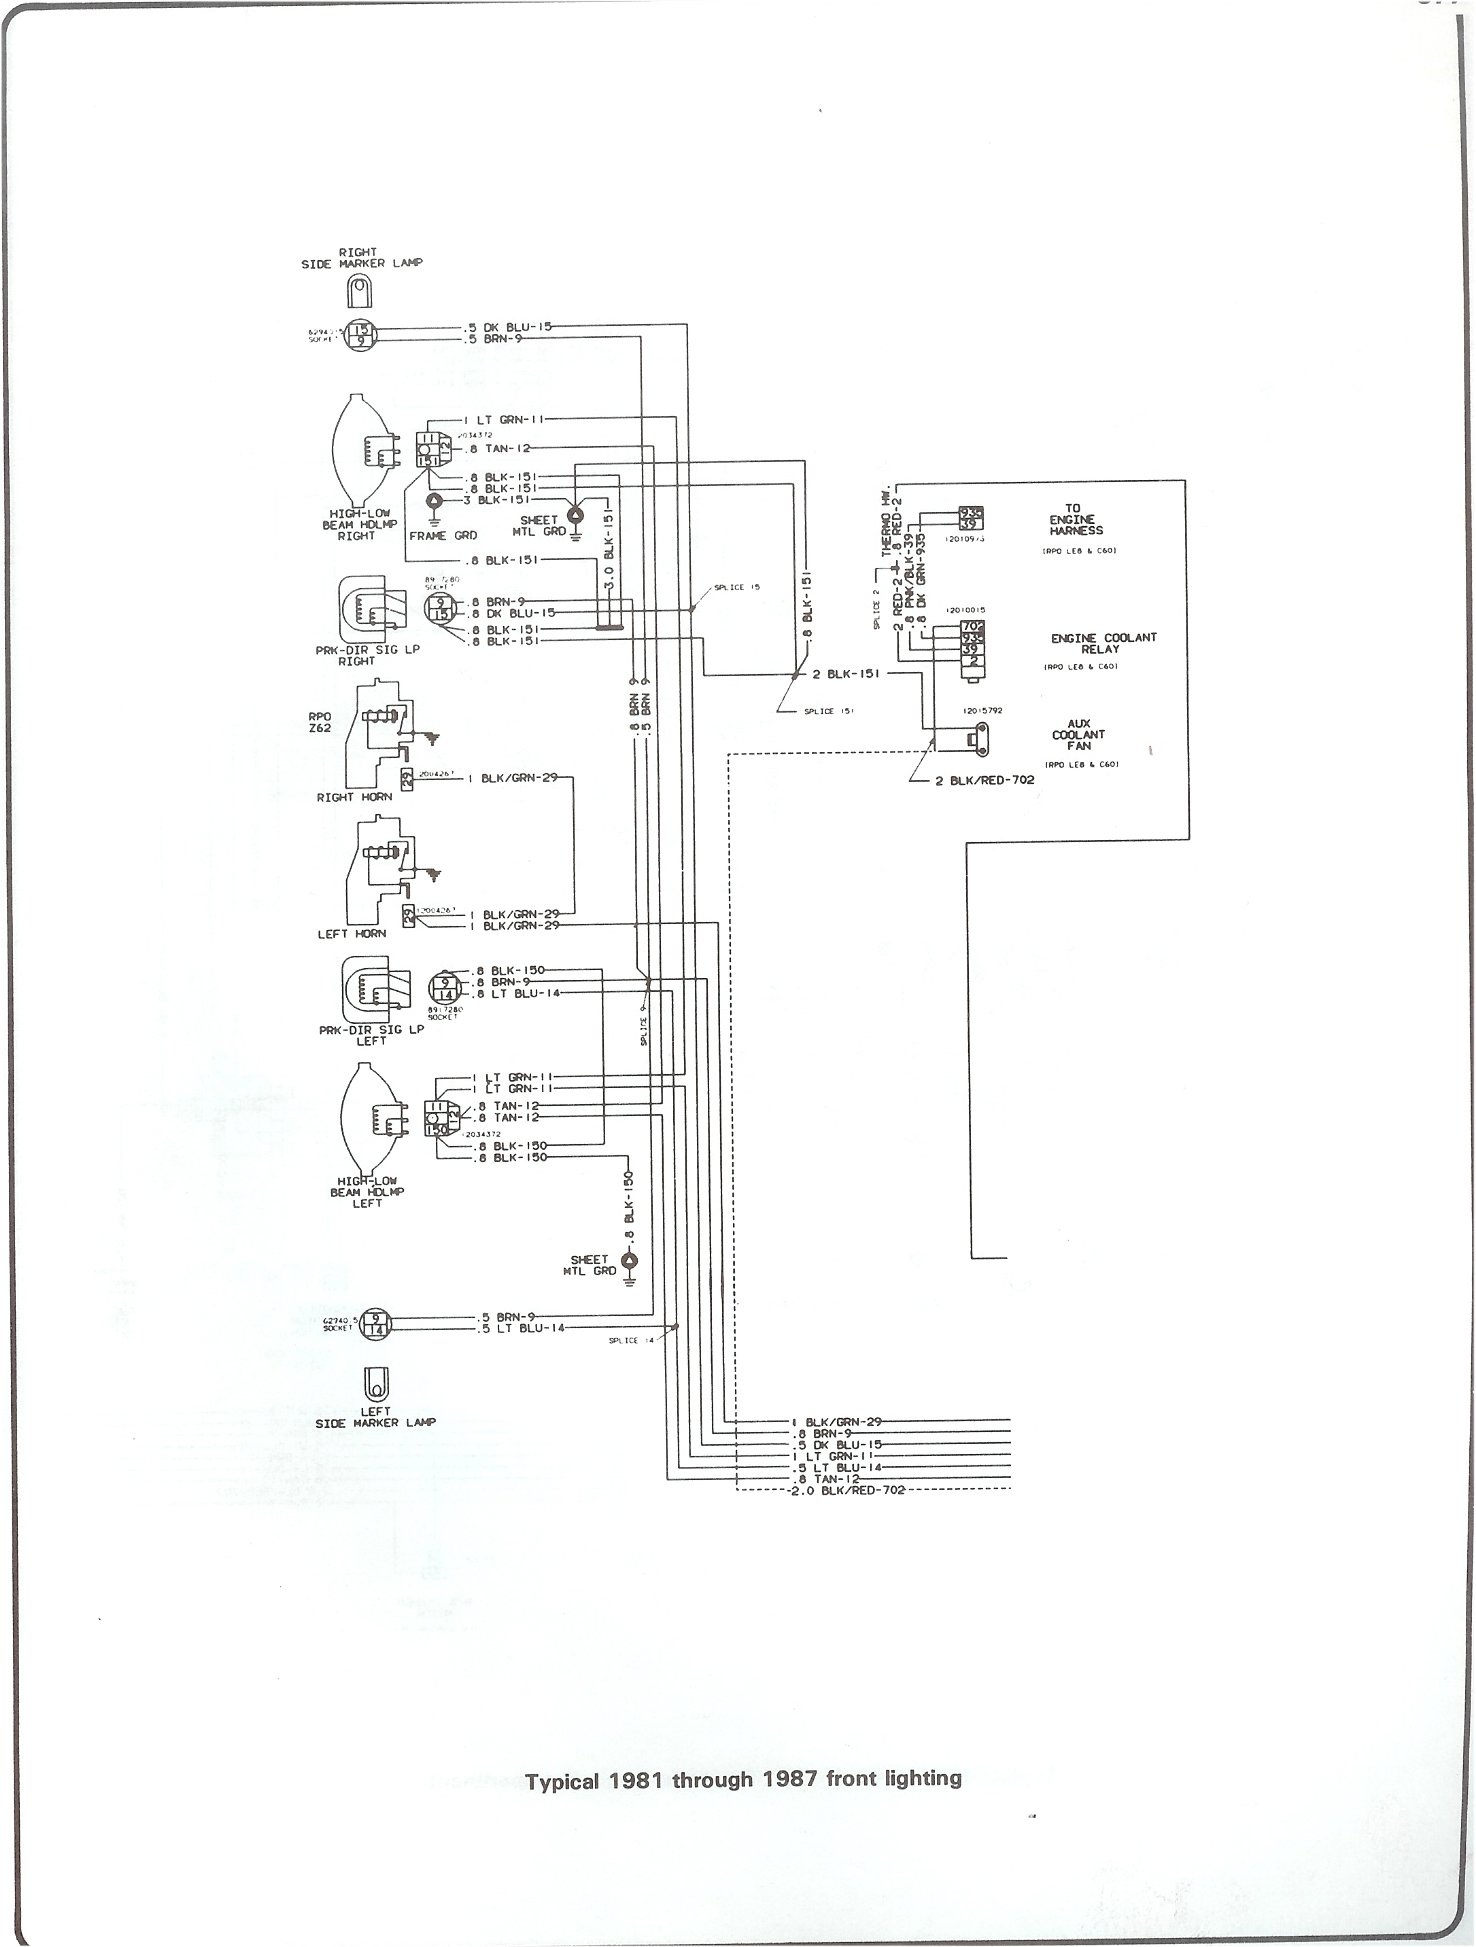 94 Chevy Truck Tail Light Wiring Diagram - Best Place to Find Wiring on gm headlight switch parts, chevy alternator regulator wiring diagram, headlight socket wiring diagram, 2001 honda civic headlight wiring diagram, 2001 chevy venture radio wiring diagram, chevrolet wiring diagram, 1957 chevy headlight switch diagram, chevy headlight wiring diagram, gm headlight switch assembly, gm wiring diagrams for dummies, peterbilt headlight wiring diagram, h4 headlight wiring diagram, gm headlight wiring harness, 3 wire headlight wiring diagram, gm upfitter wiring-diagram, 1967 camaro headlight motor wiring diagram, 2000 vw jetta stereo wiring diagram, 55 chevy headlight switch diagram, jeep grand cherokee fuse box diagram, relay wiring diagram,